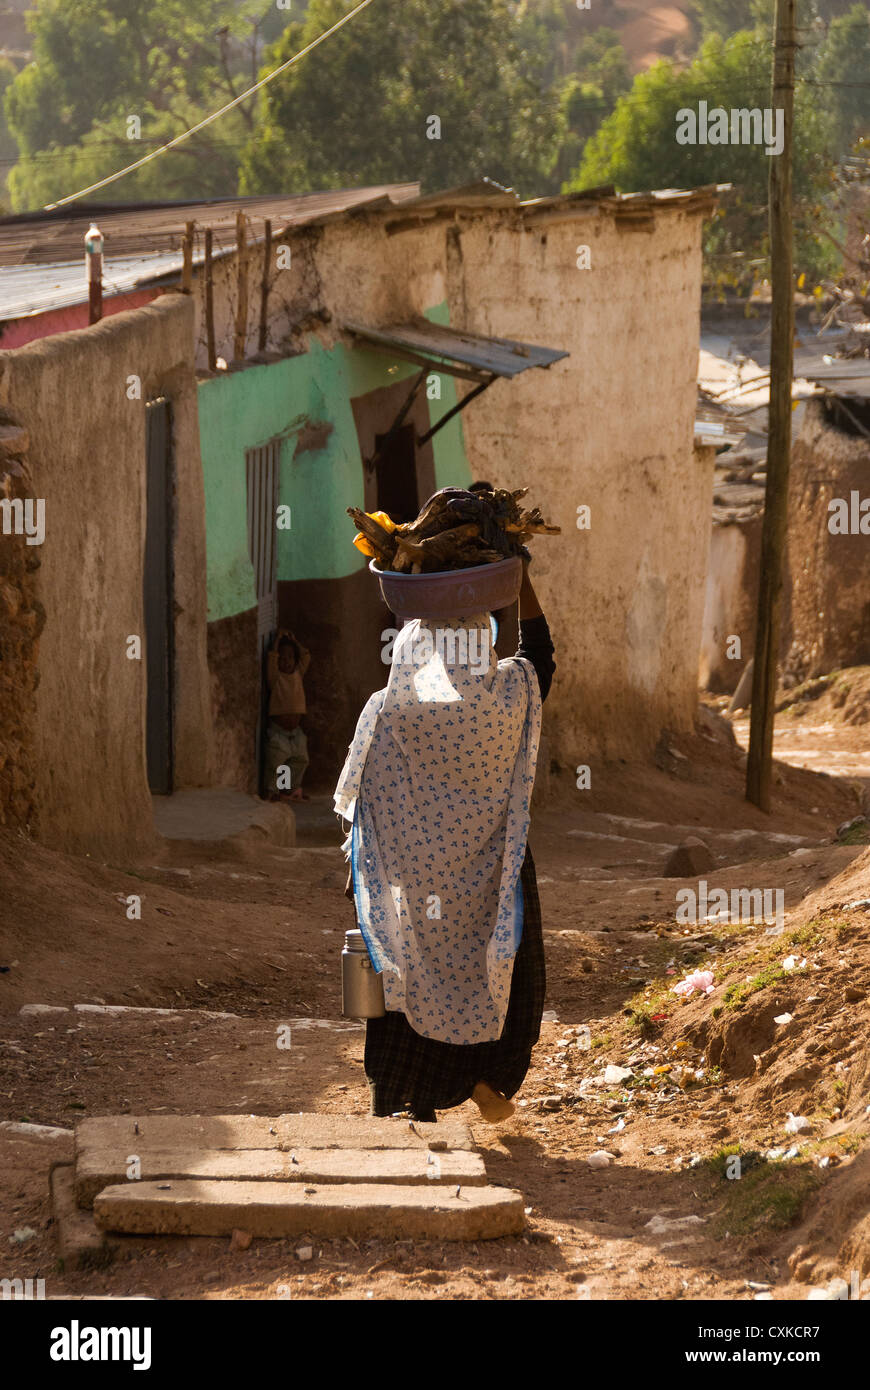 Elk200-4183v Ethiopia, Harar, old town, woman carrying load on head Stock Photo